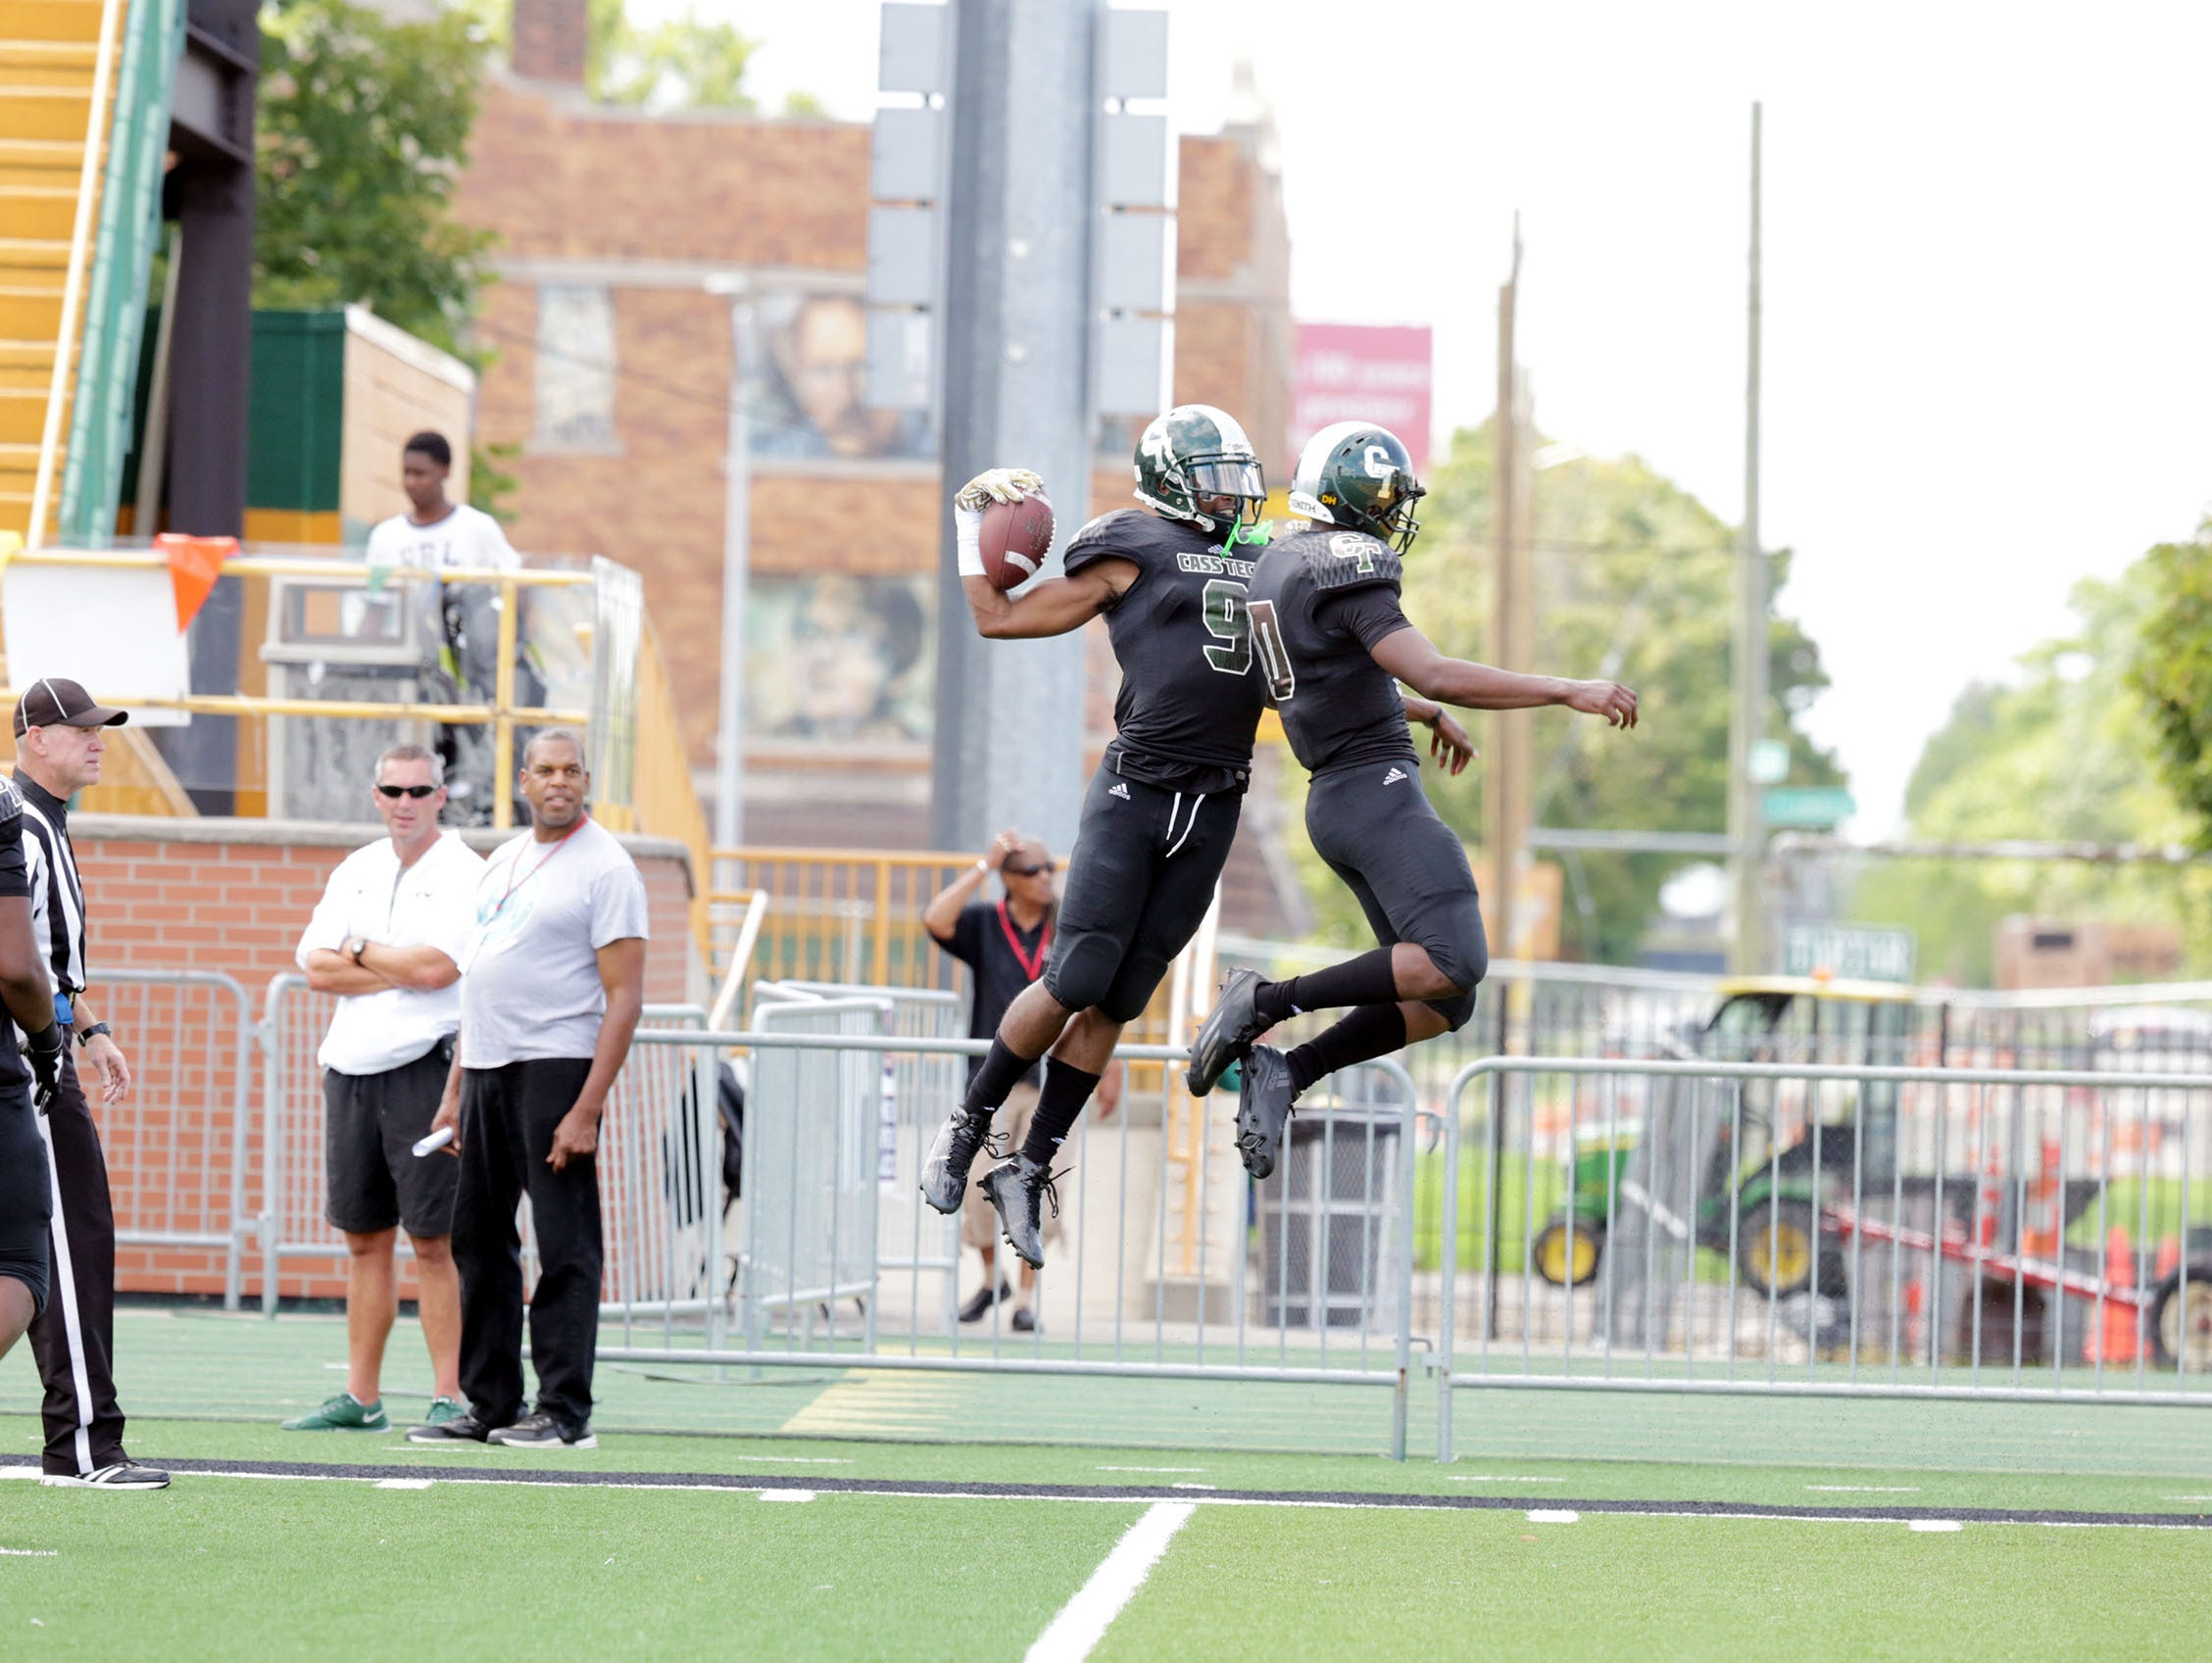 The state's top recruit Donovan Peoples-Jones (9), left, celebrates after scoring a touchdown with his teammate during the first half. He lead Cass Tech to a 45-27 win over Oak Park during the Detroit Prep KickOff Classic Sunday, Aug. 28, 2016 at Wayne State University's Tom Adams football field. Regina H. Boone/Detroit Free Press